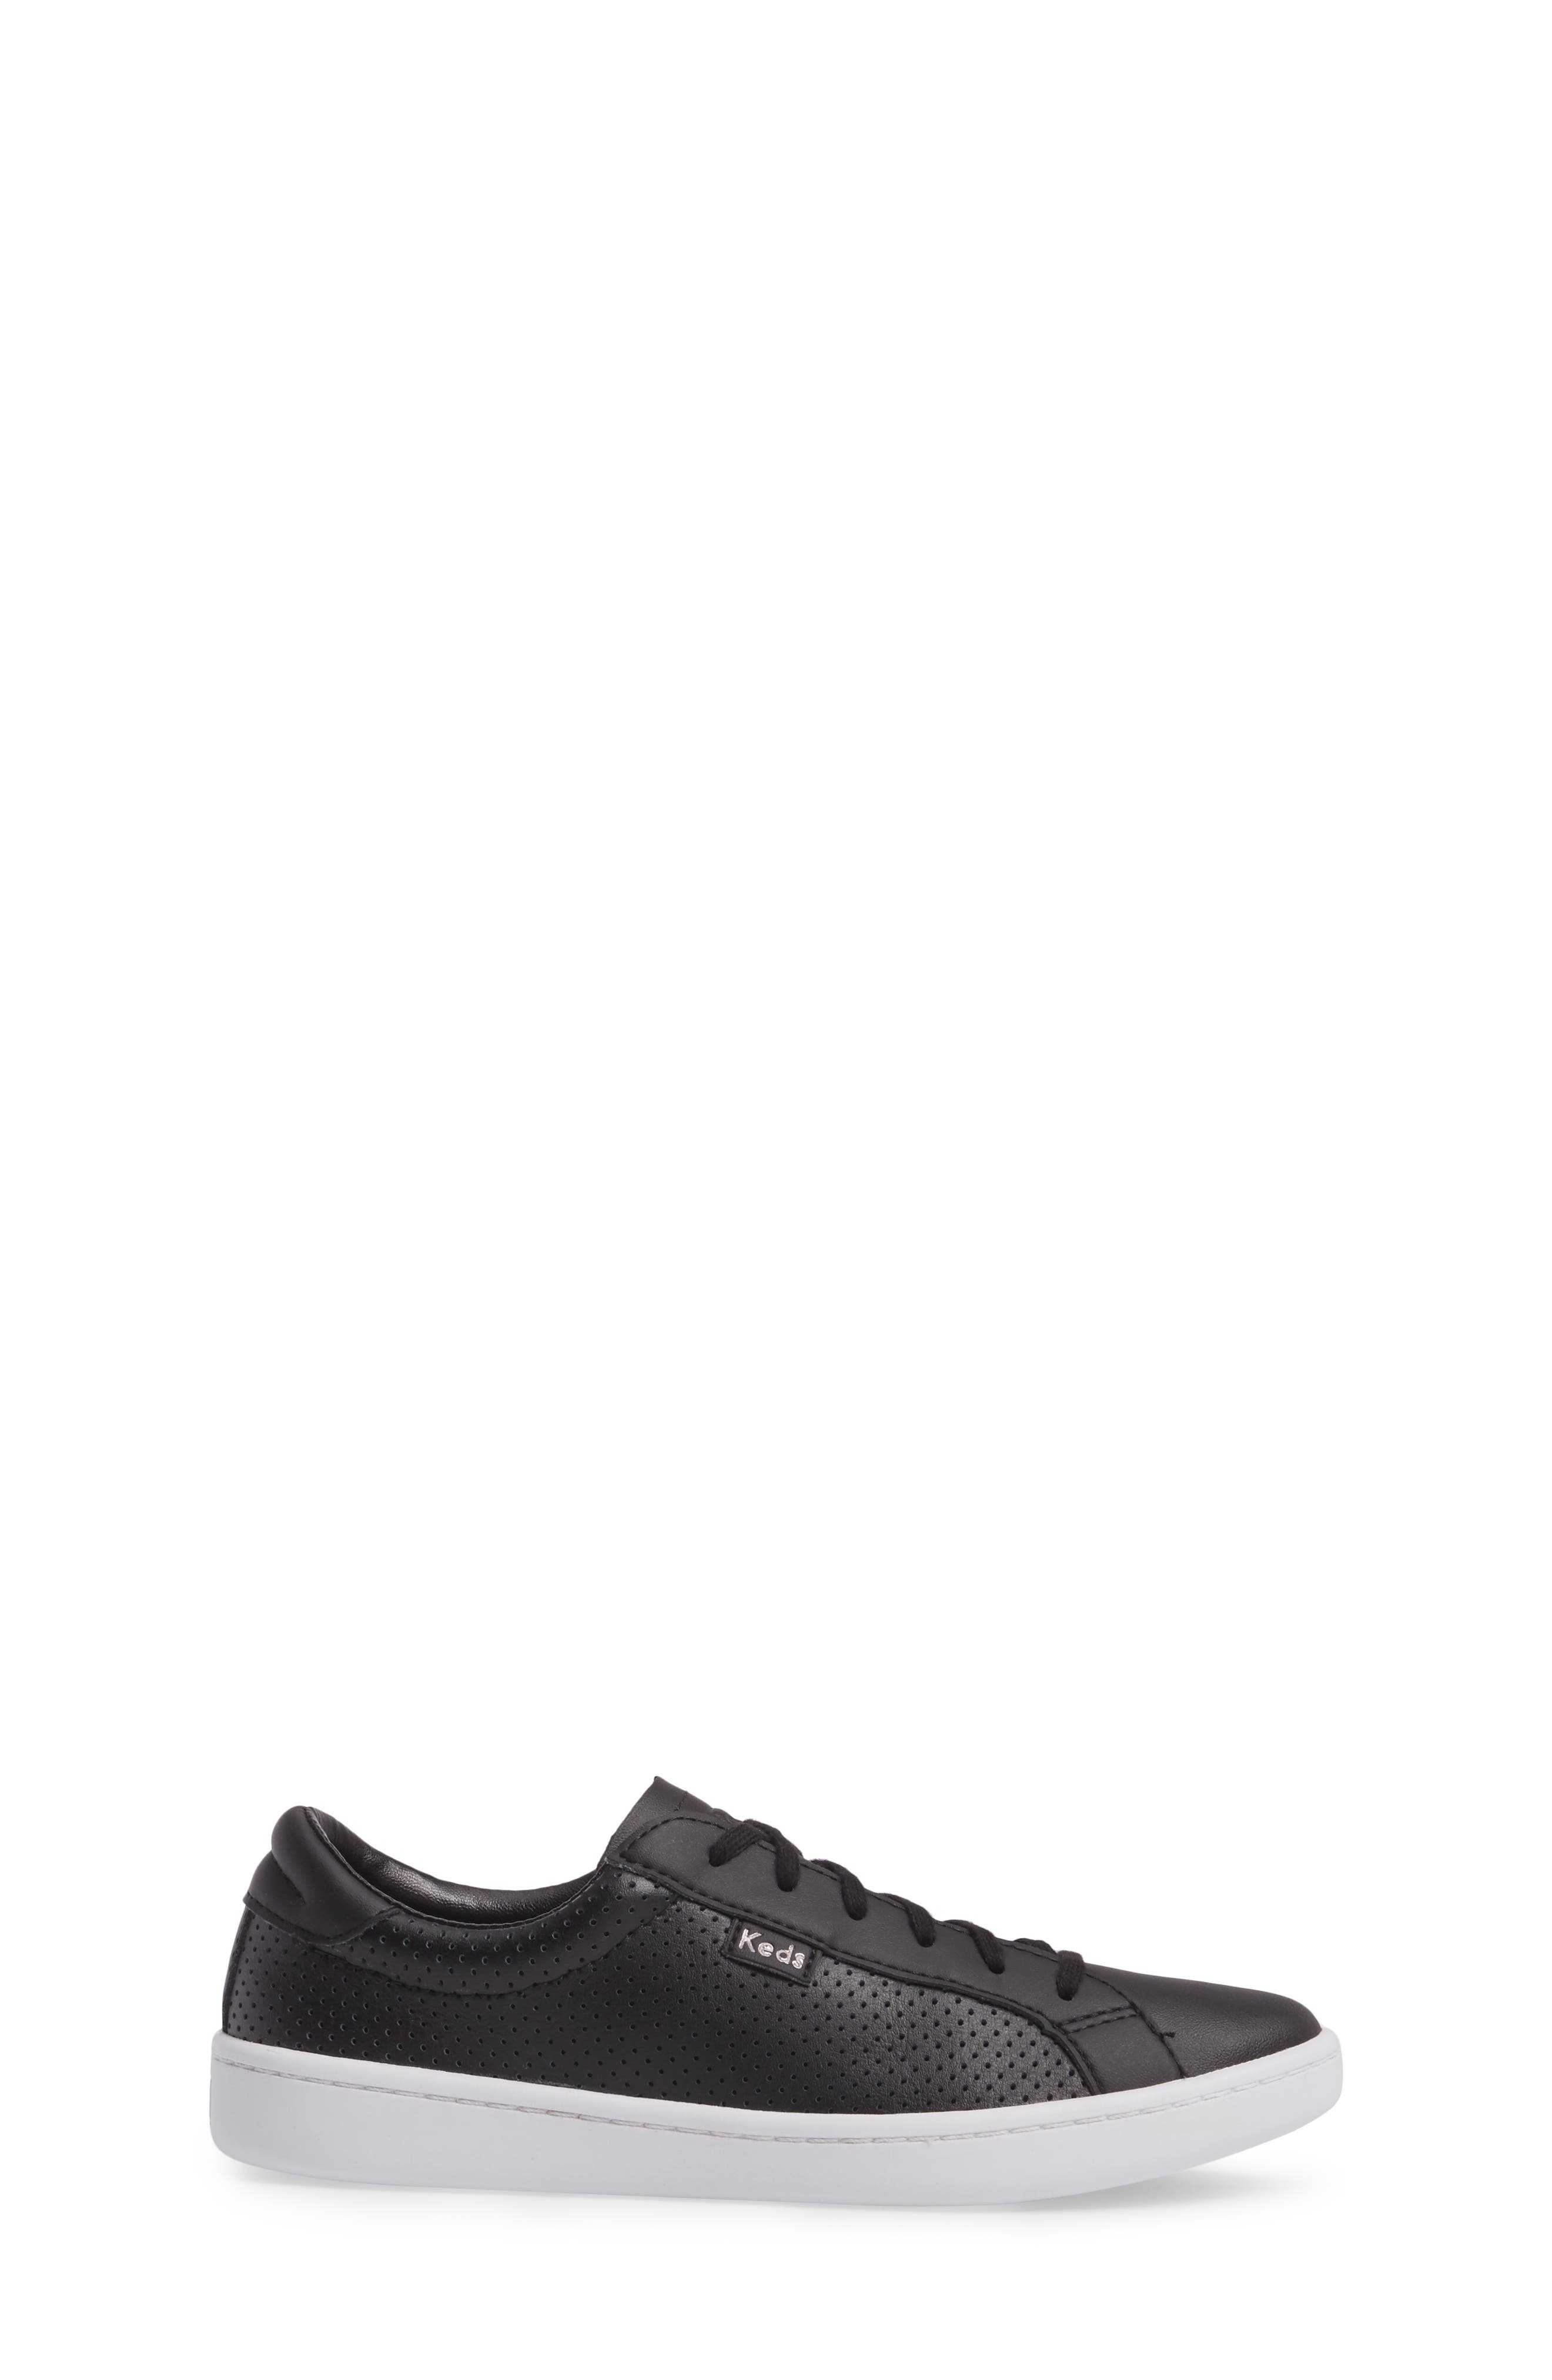 Alternate Image 3  - Keds® Ace Perforated Low Top Sneaker (Toddler, Little Kid & Big Kid)